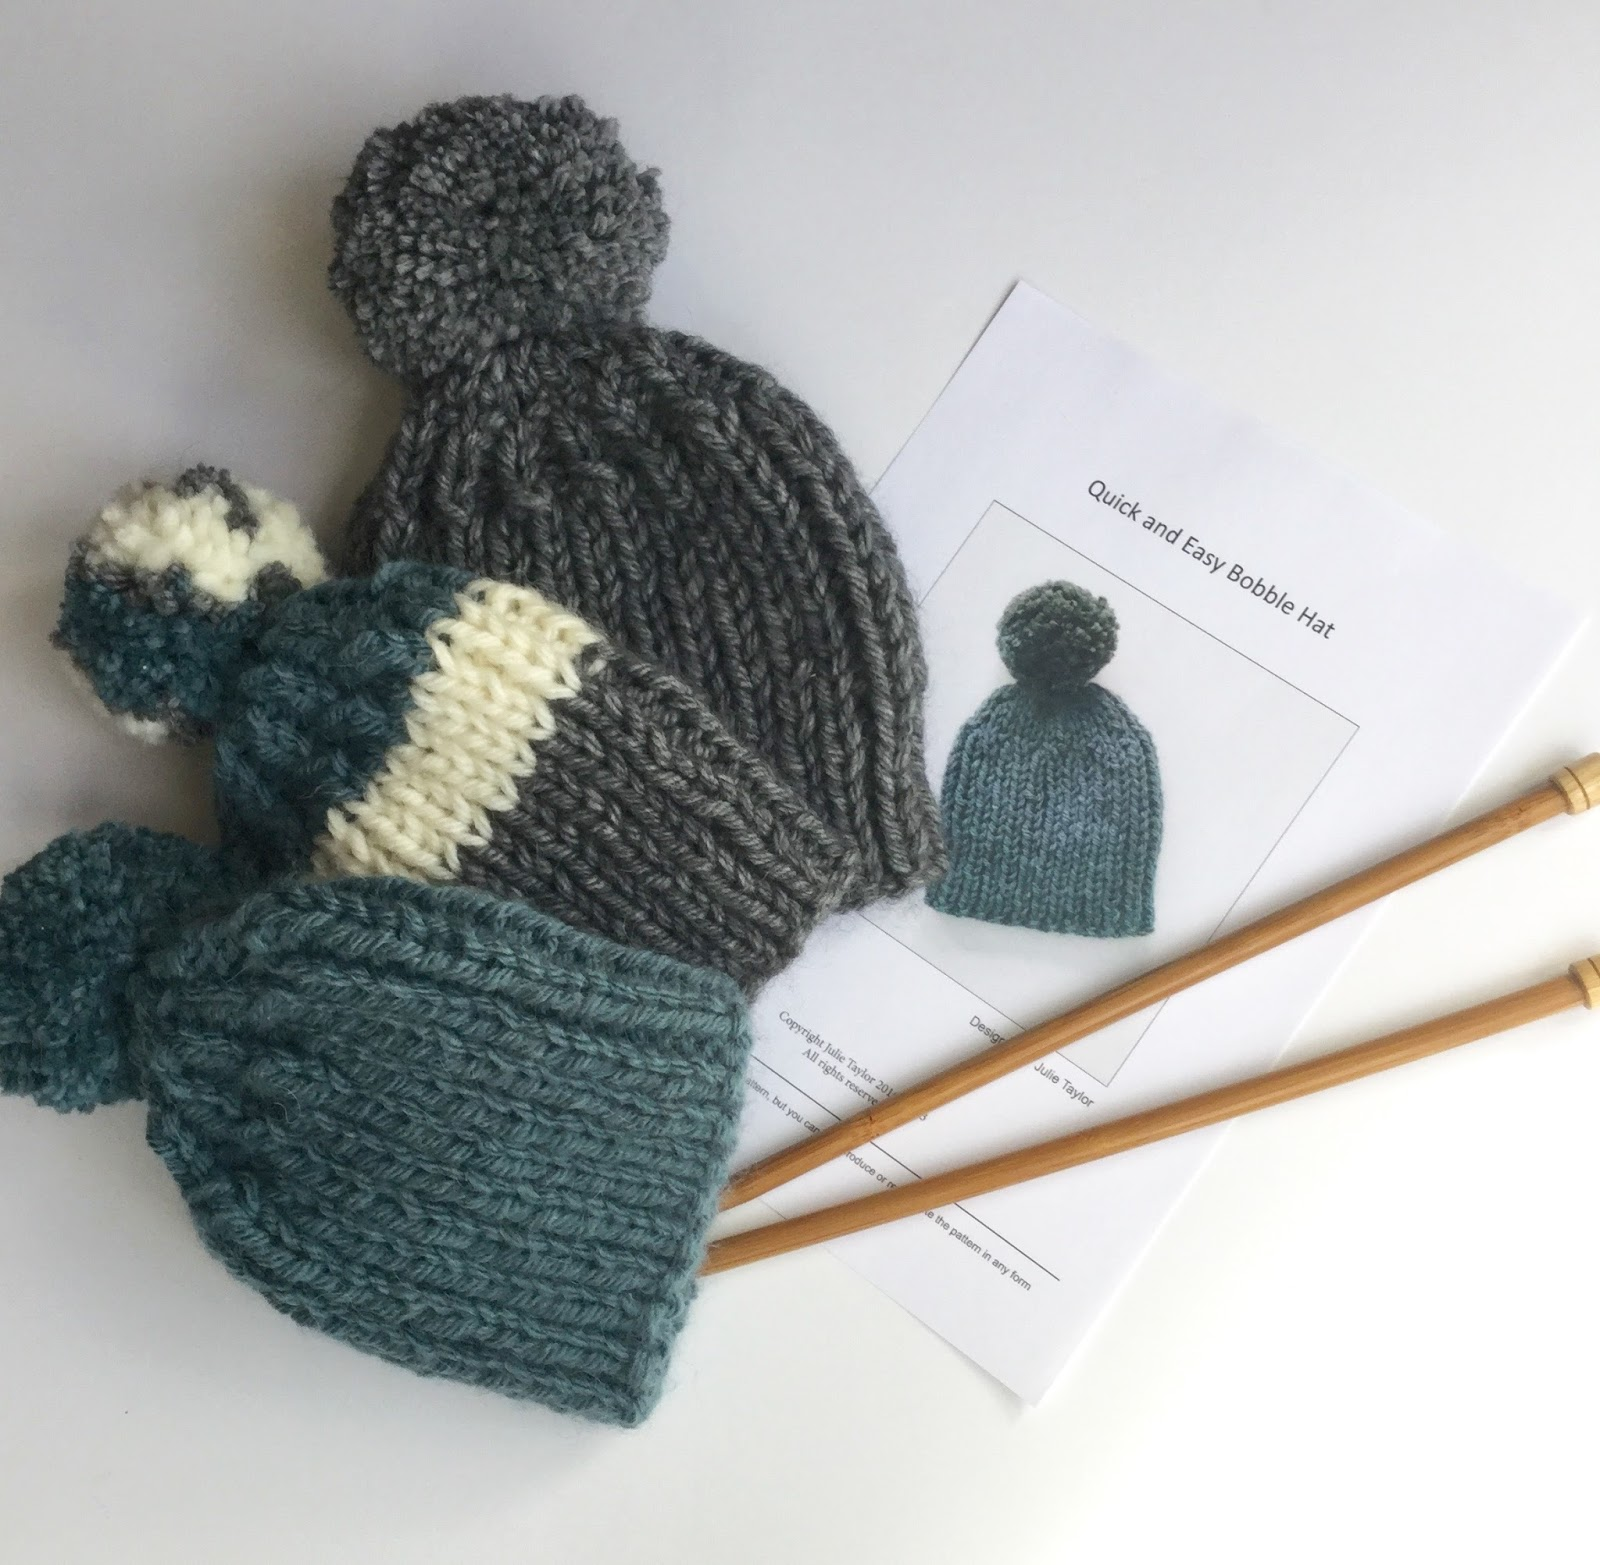 Mack and Mabel: Quick and Easy Bobble Hat - A Free Pattern